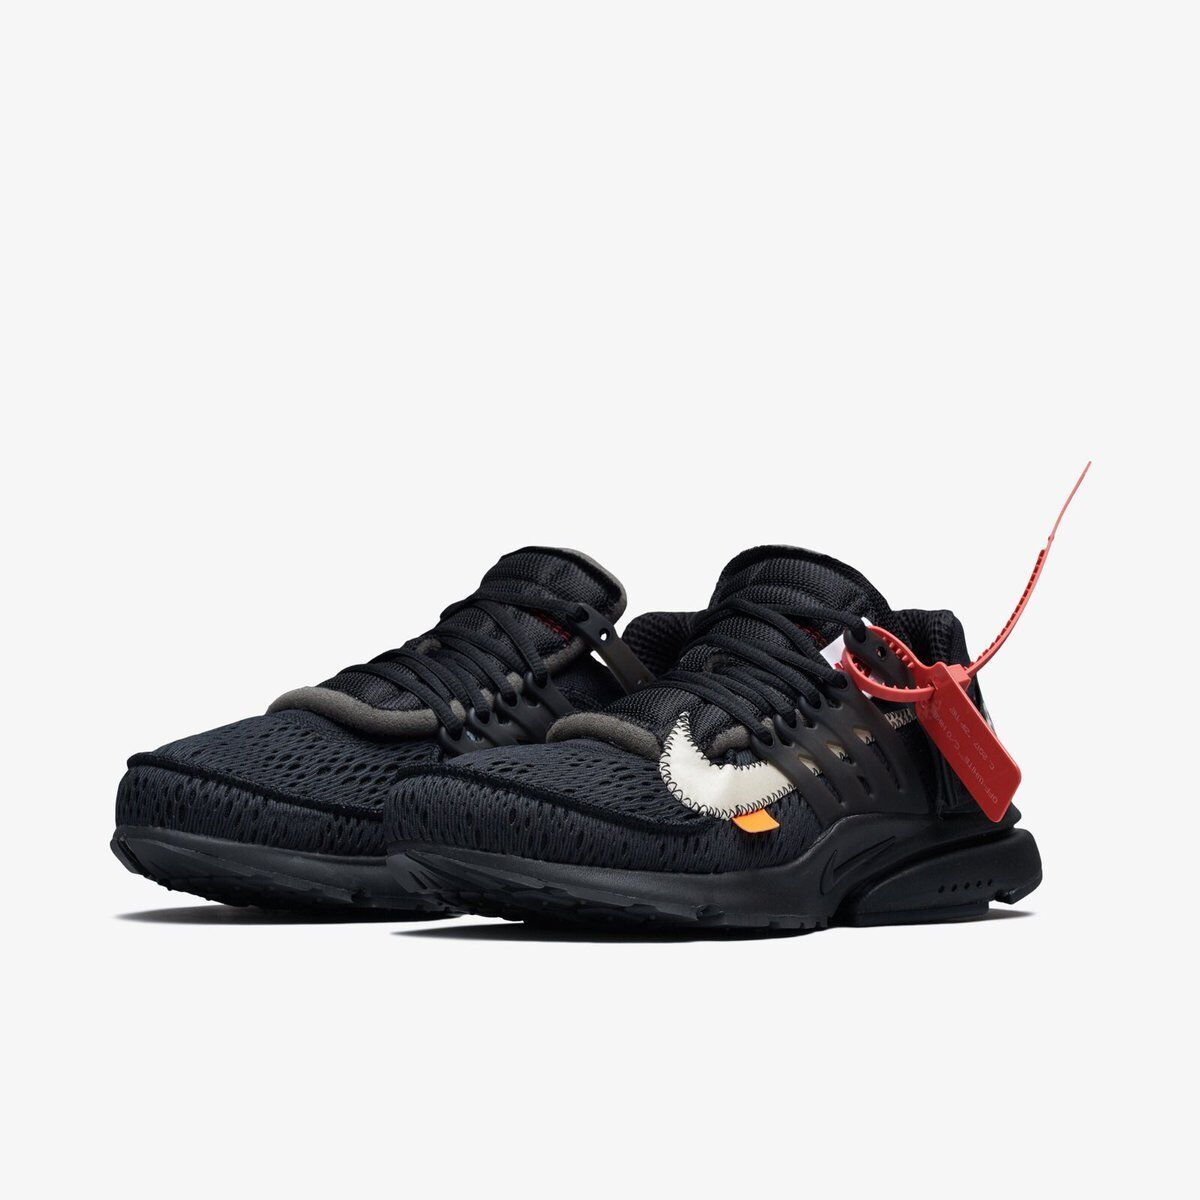 Nike x Off-White Air Presto Black Polar Opposites The 10 Ten Virgil Abloh 9